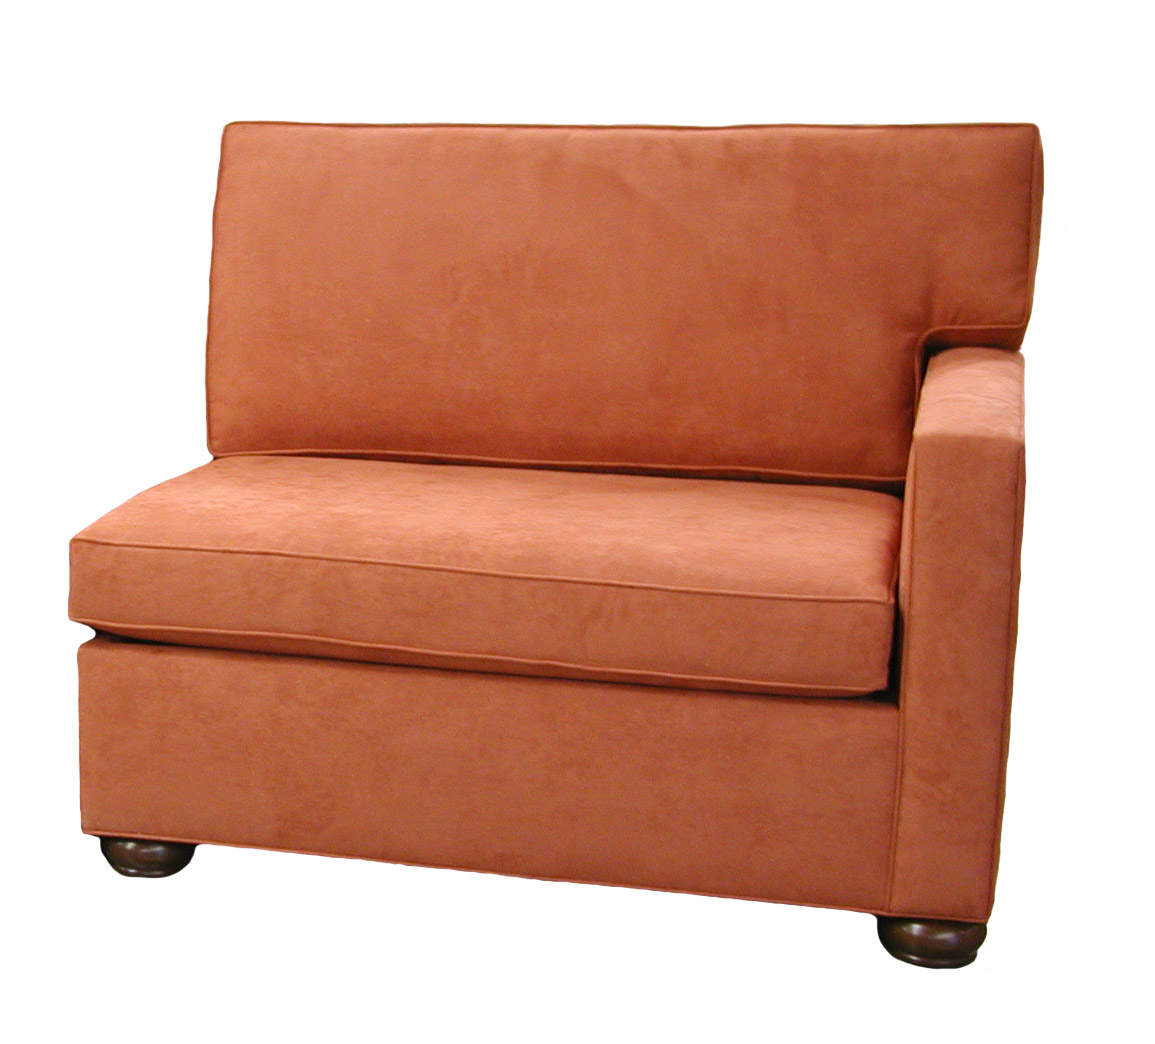 Crawford 1-Arm Single Sleeper Sofa Right Facing